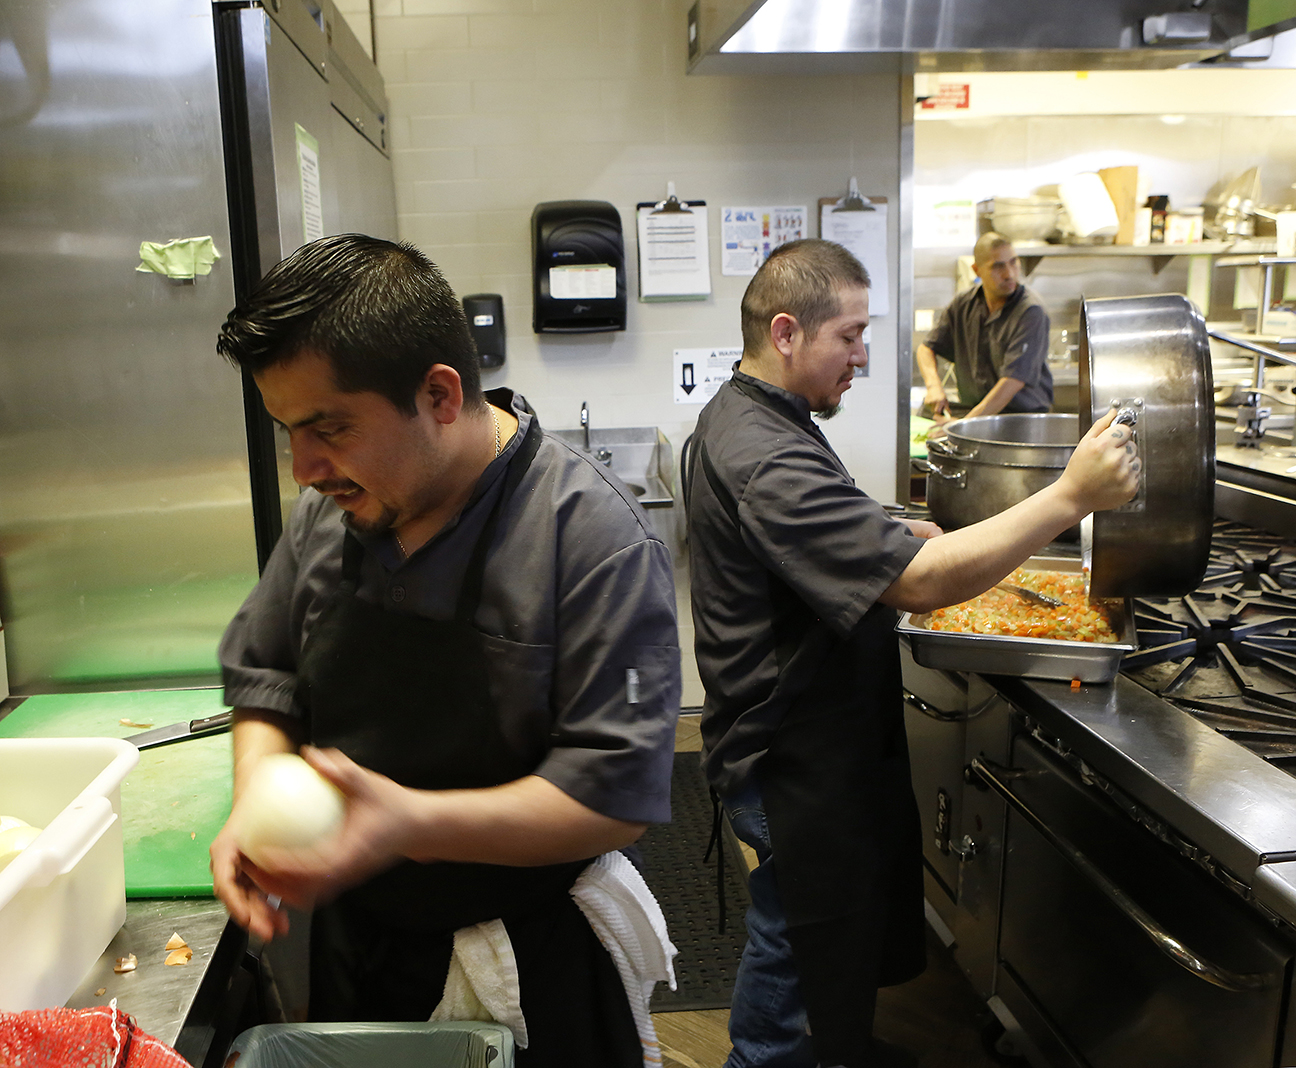 Restaurant-Workers-033018-2a